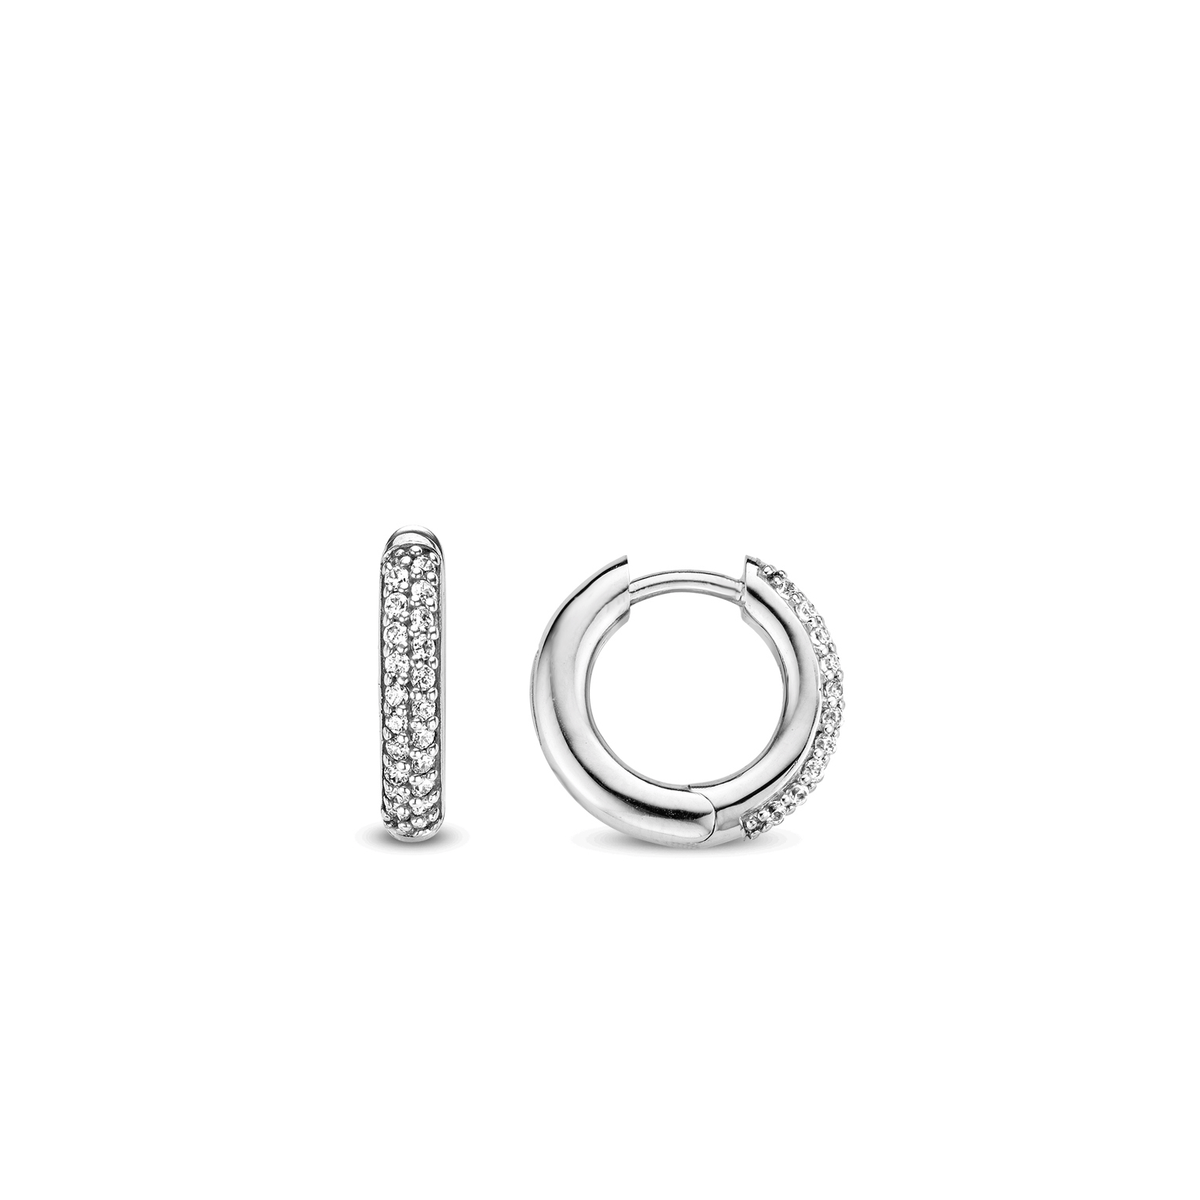 TI SENTO - Milano Earrings 7557ZI